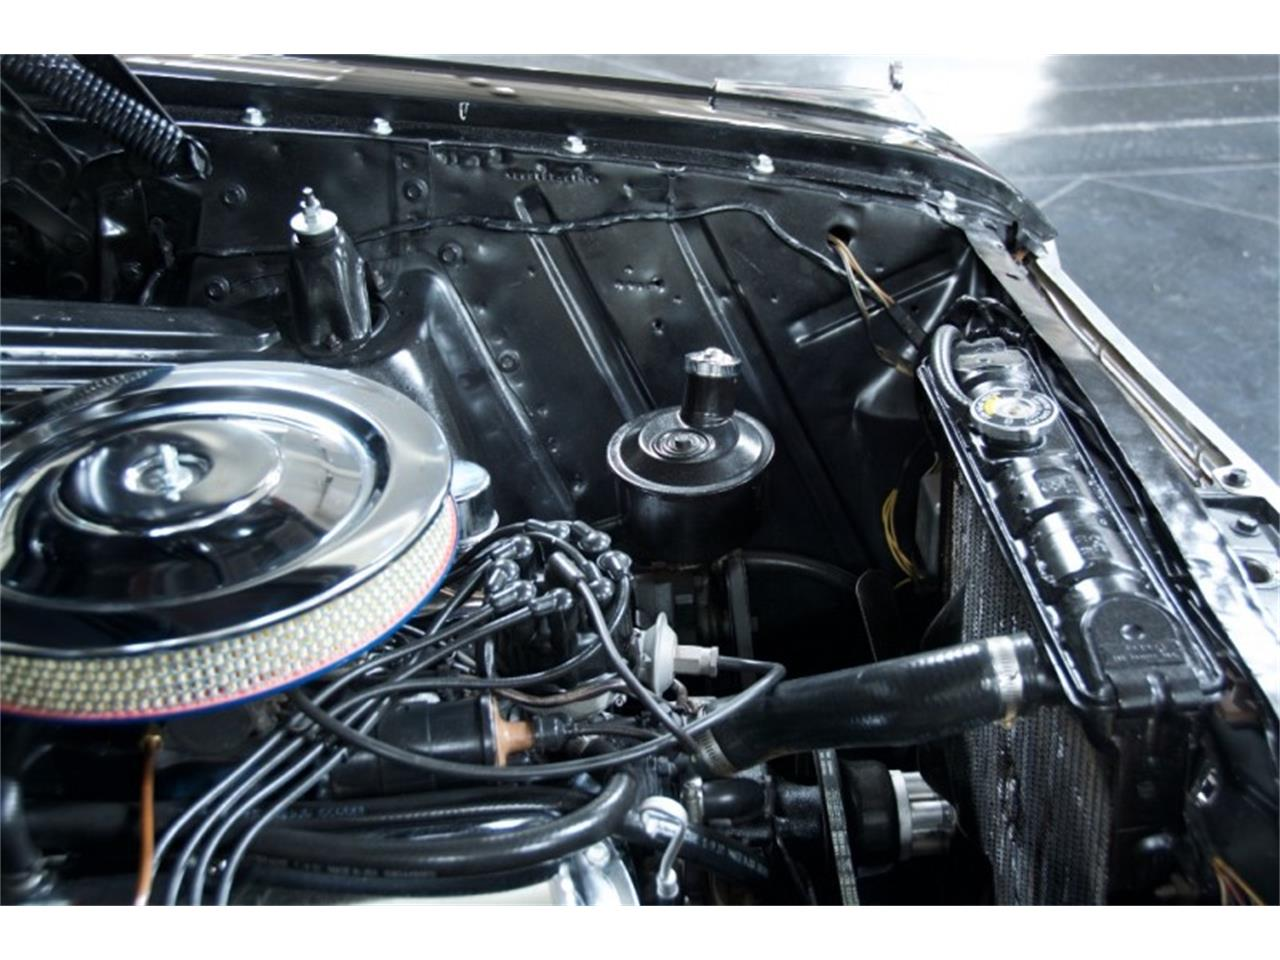 1963 Ford Falcon for sale in Milpitas, CA – photo 67